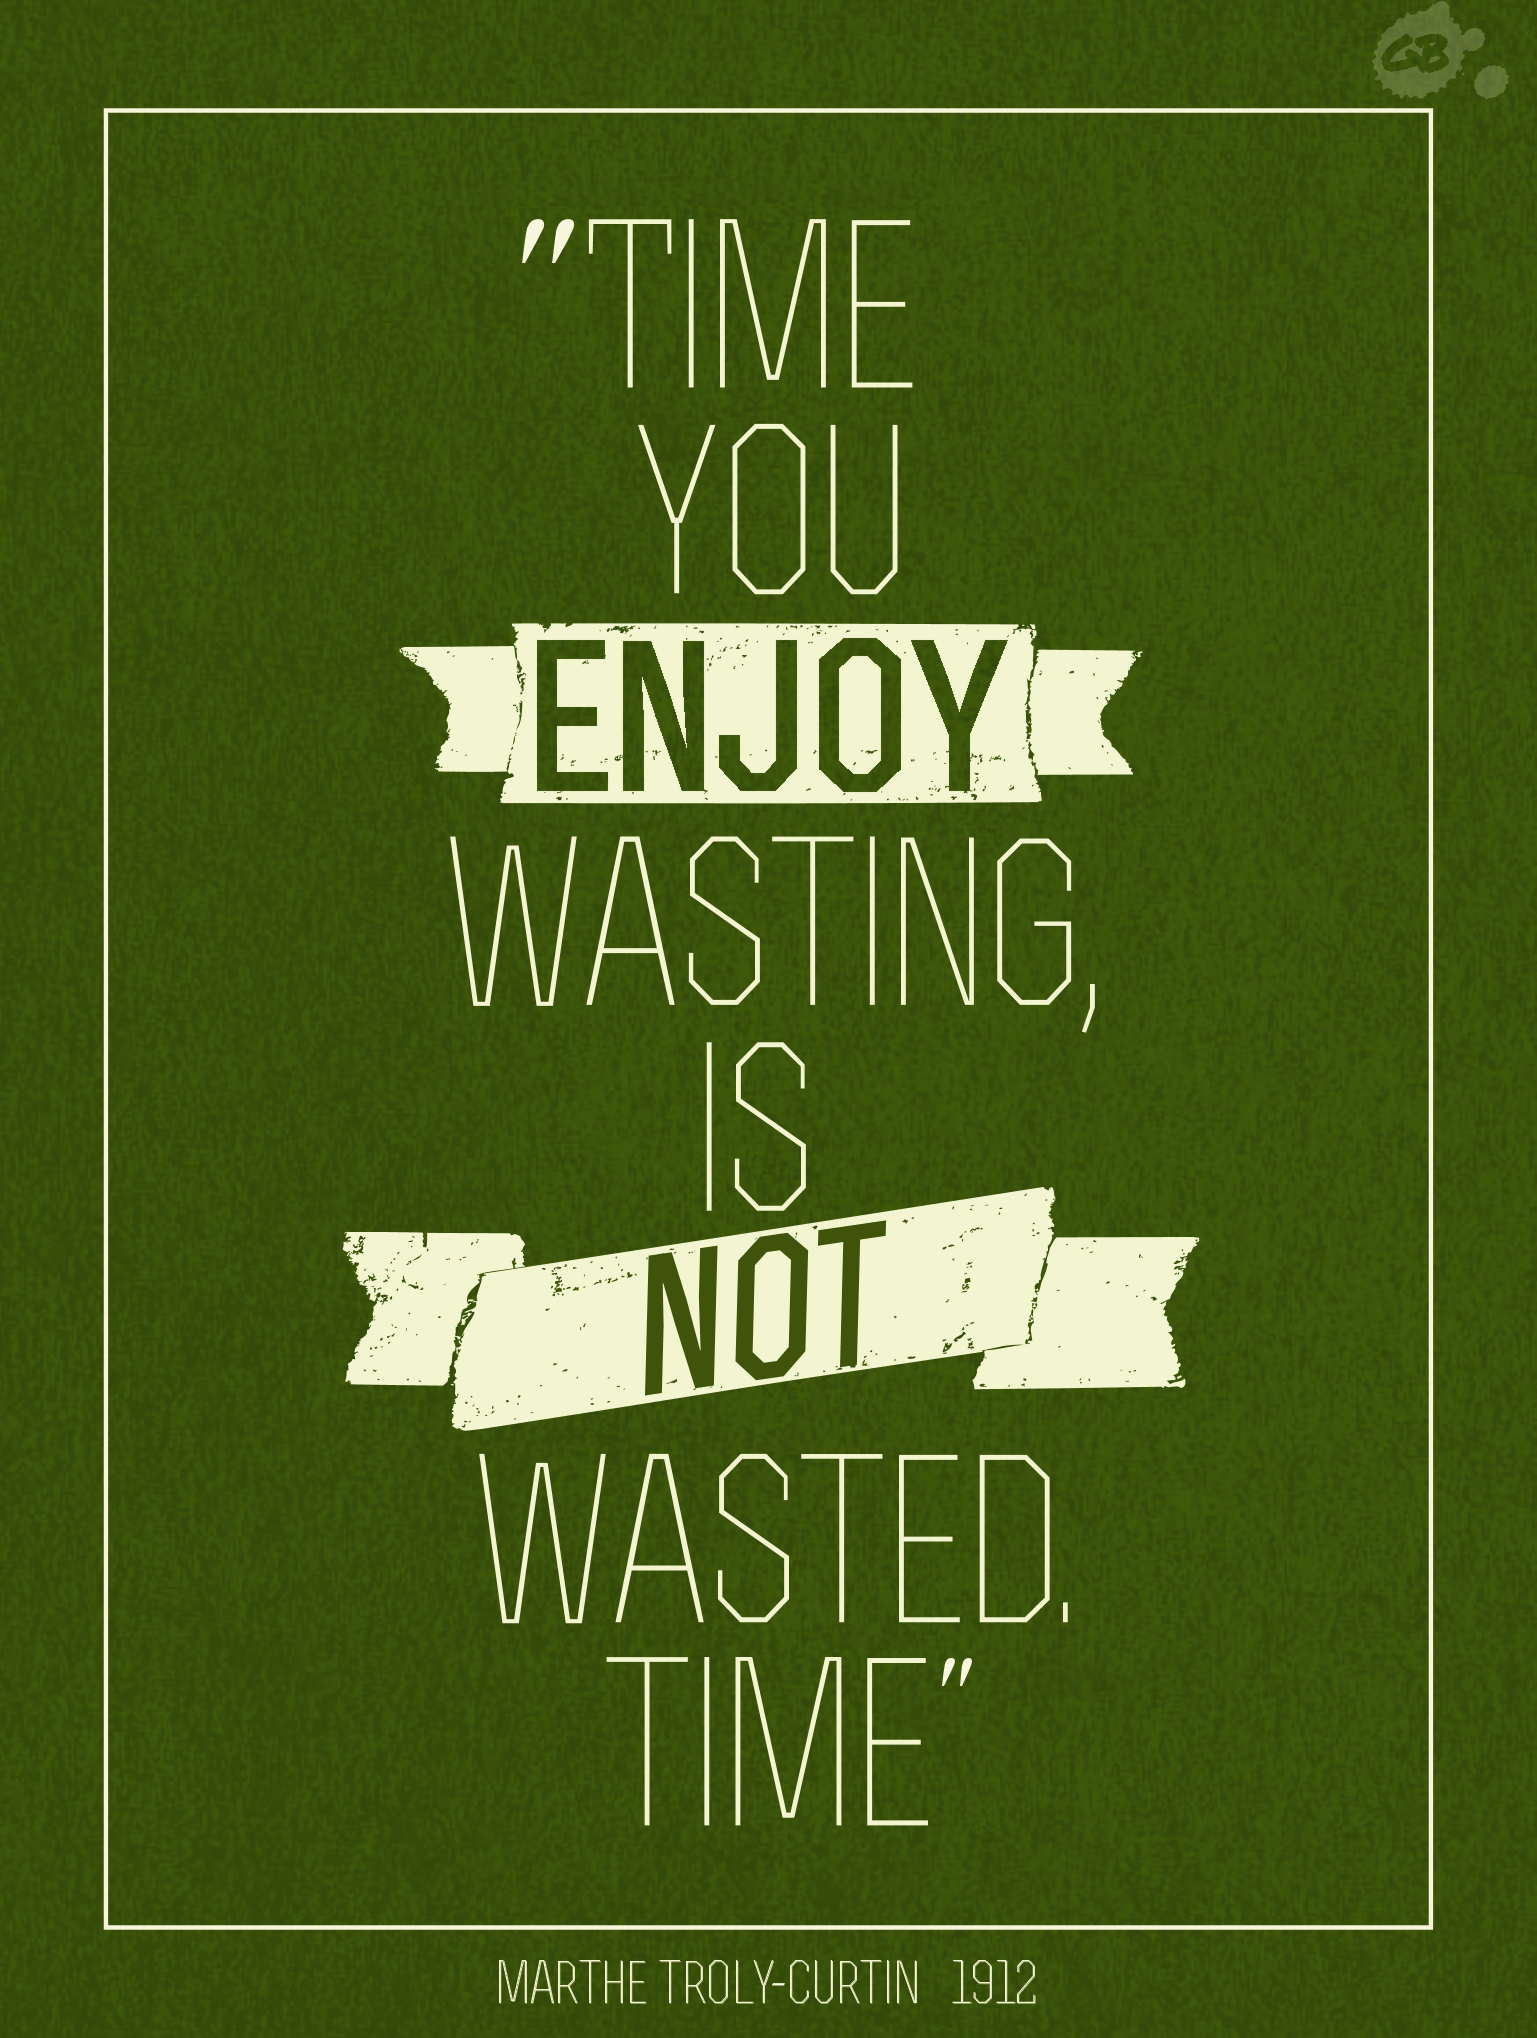 Time You Enjoy Wasting Is Not Wasted Time Quote 300dpi Www Facebook Com Gordonbrebnerdesigns Funny Quotes Time Quotes Book Quotes